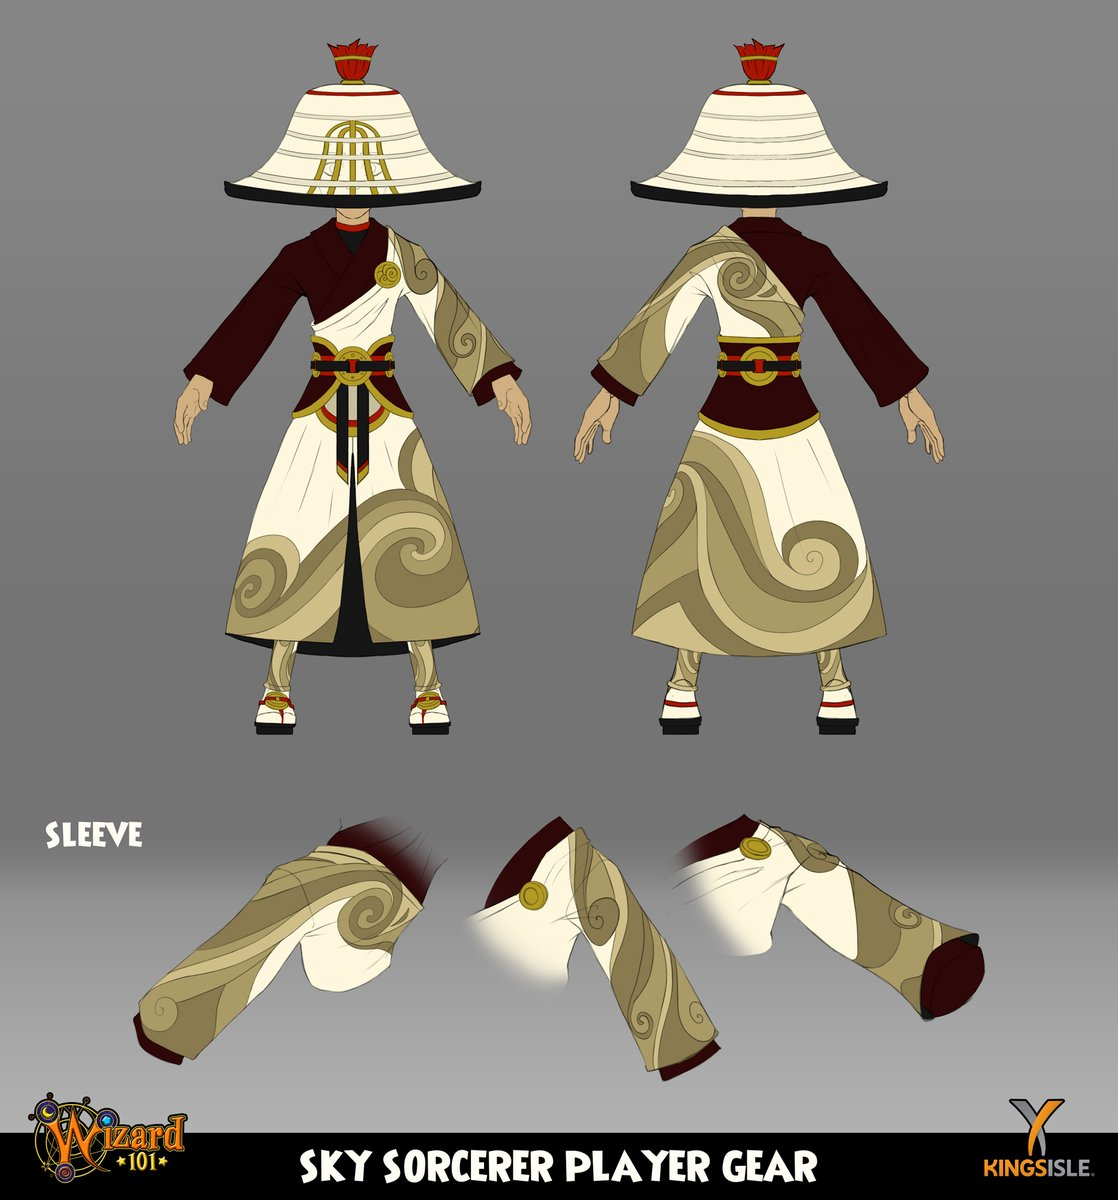 Here's the player gear for the Sky Sorcerer in the Heavenly Palace Bundle. A fun gear set to work on, especially the swirling texture! @Wizard101 @KingsIsle #wizard101 #heavenlypalace #skysorcerer #swirl #staff #fantasyart #videogameart #conceptartpic.twitter.com/EjQUKIuybL